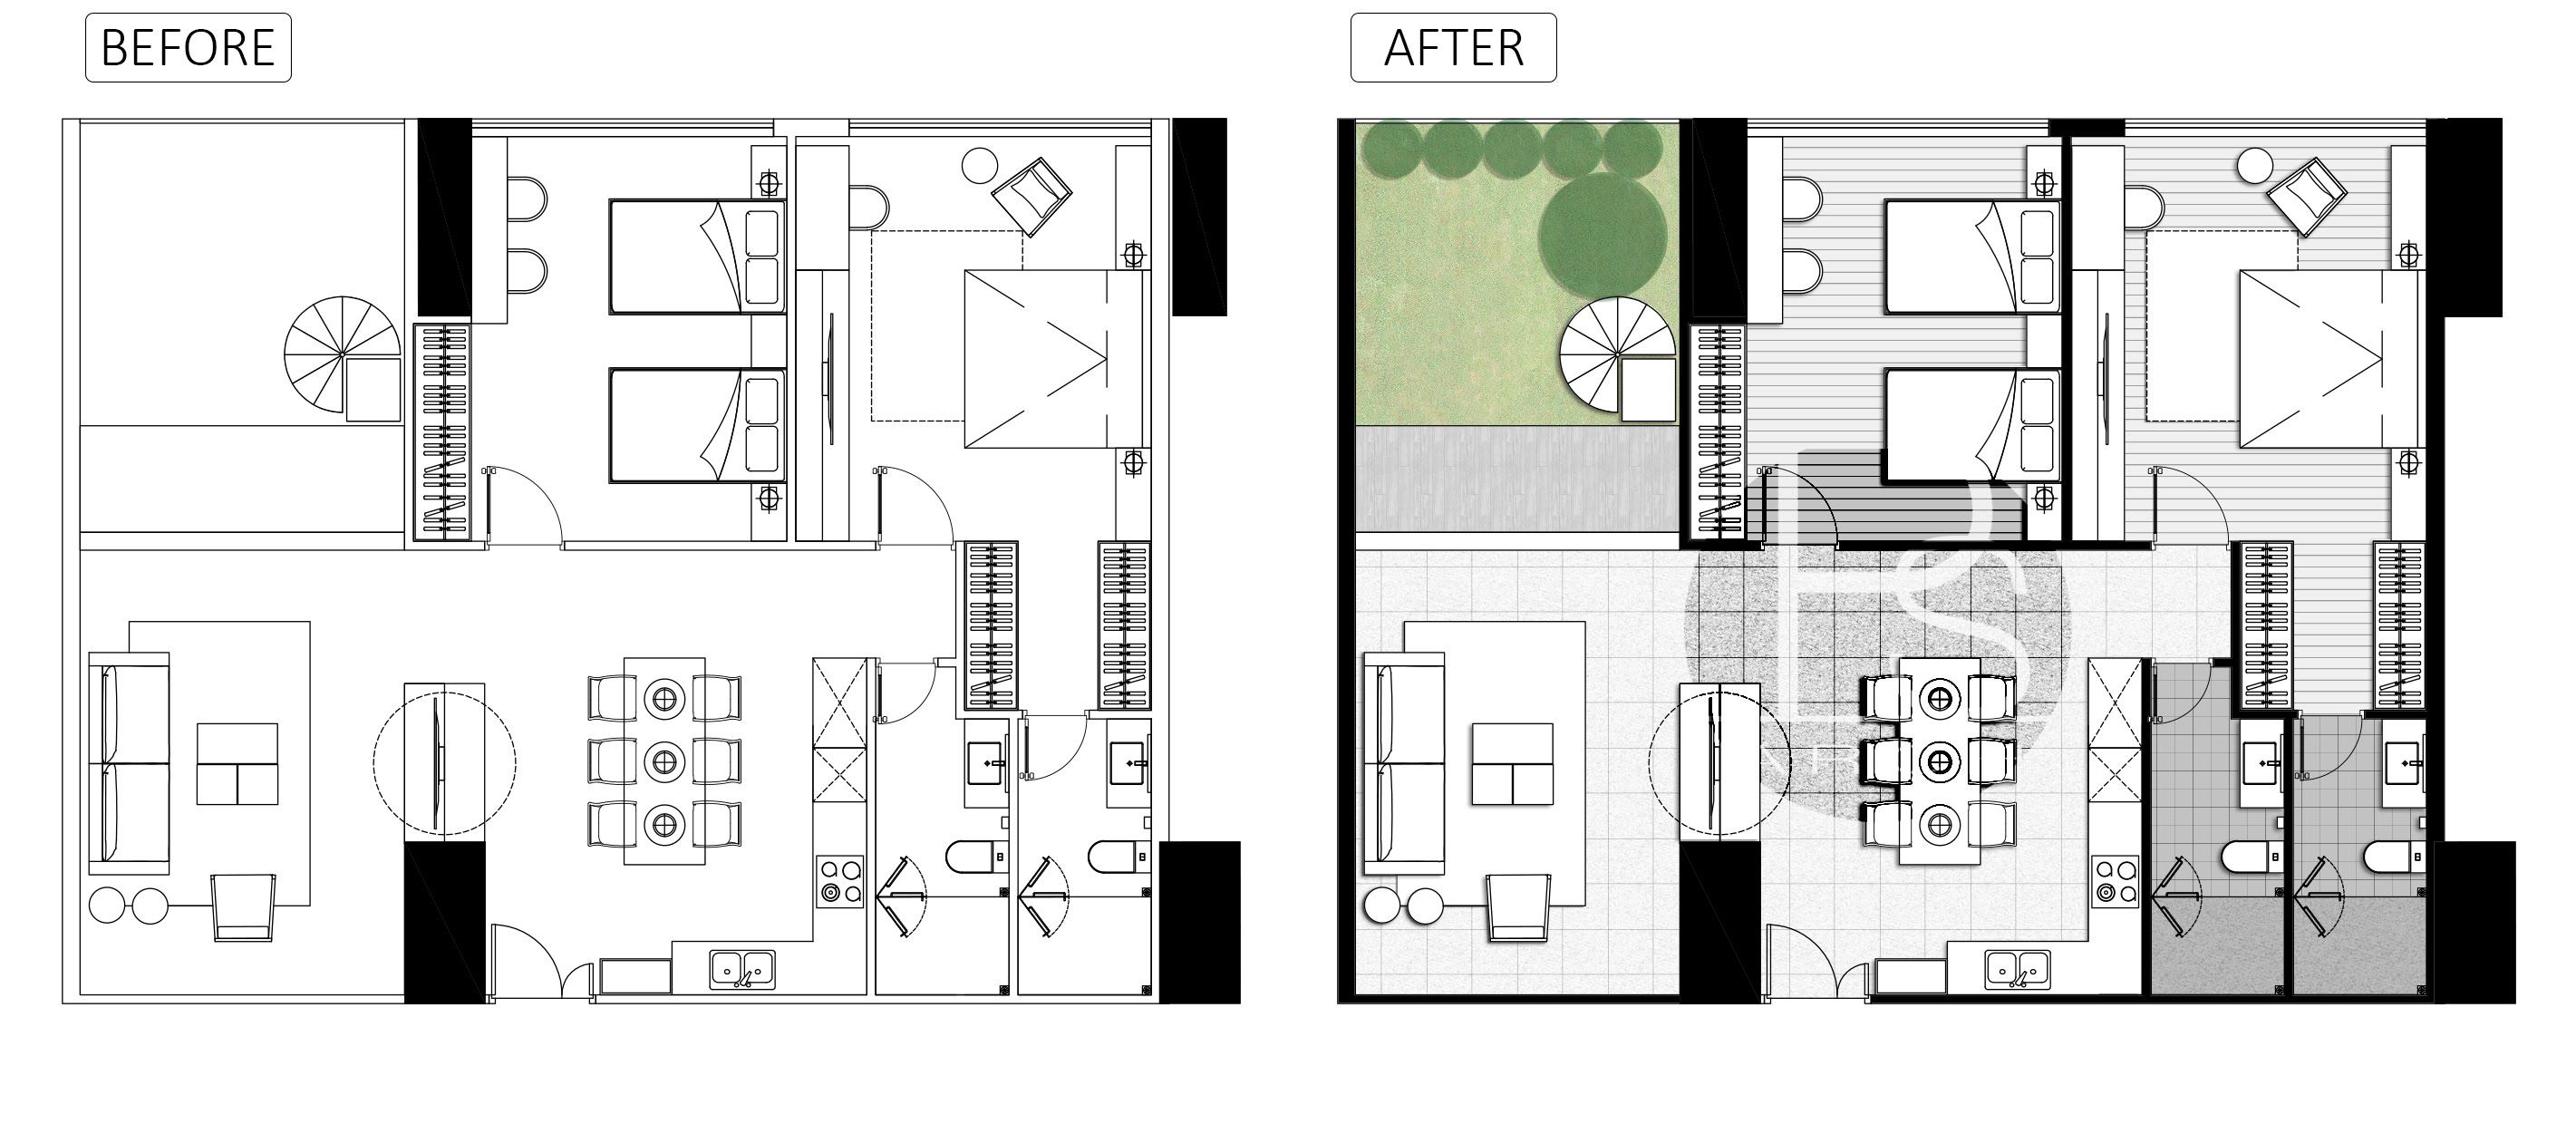 Architecture plan render by photoshop_ Simple style _ PART 3